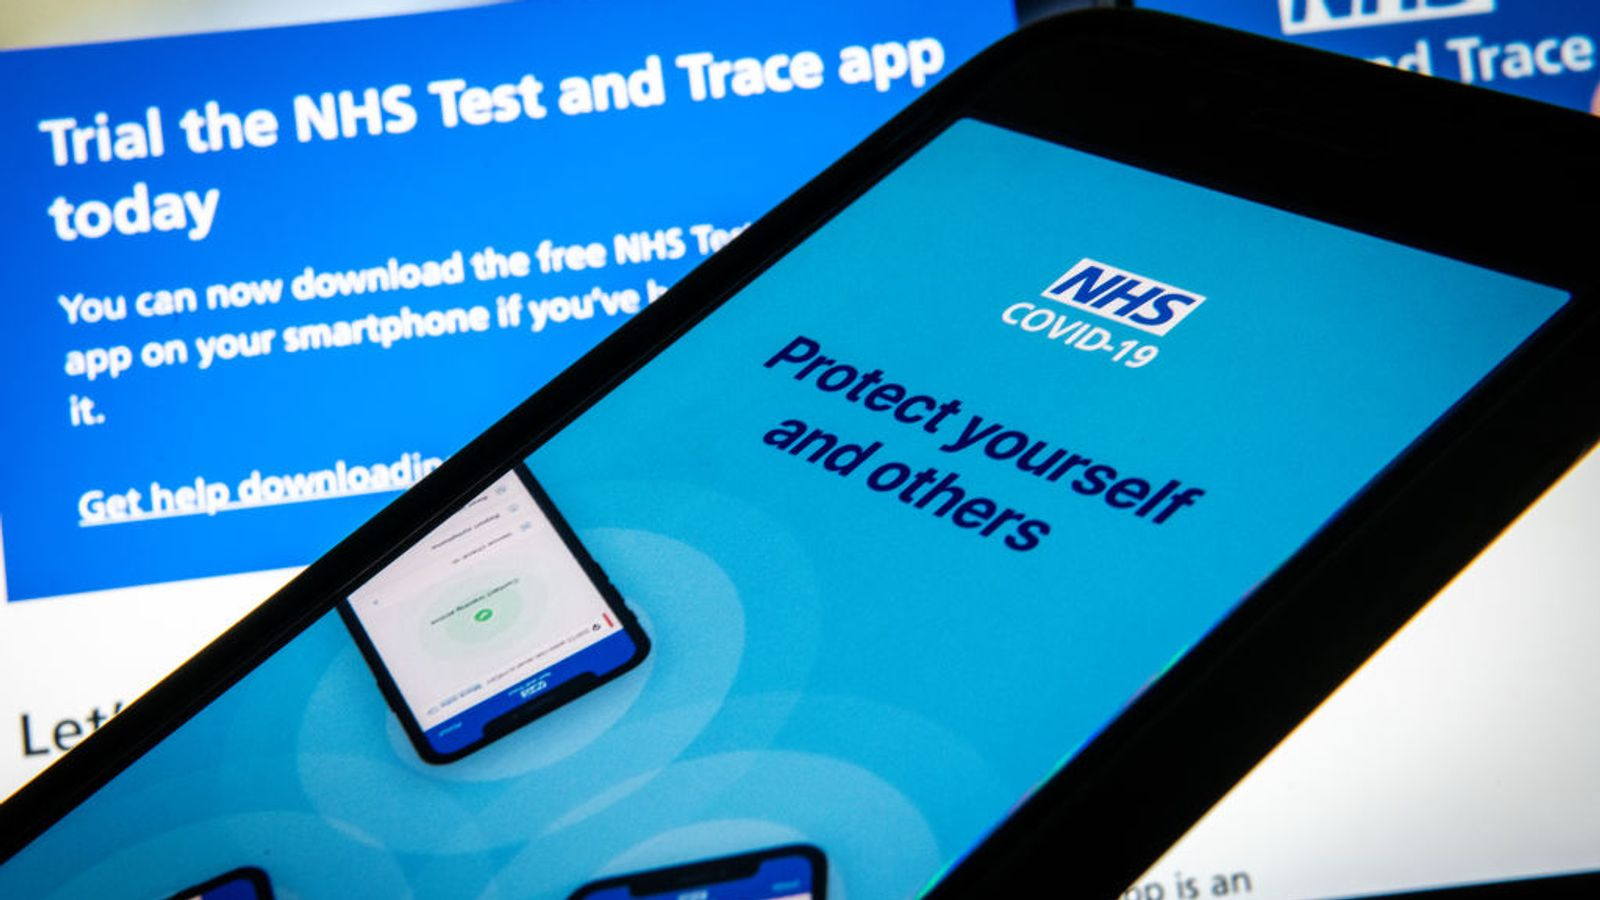 The NHS COVID-19 app is not launching for many iPhone owners